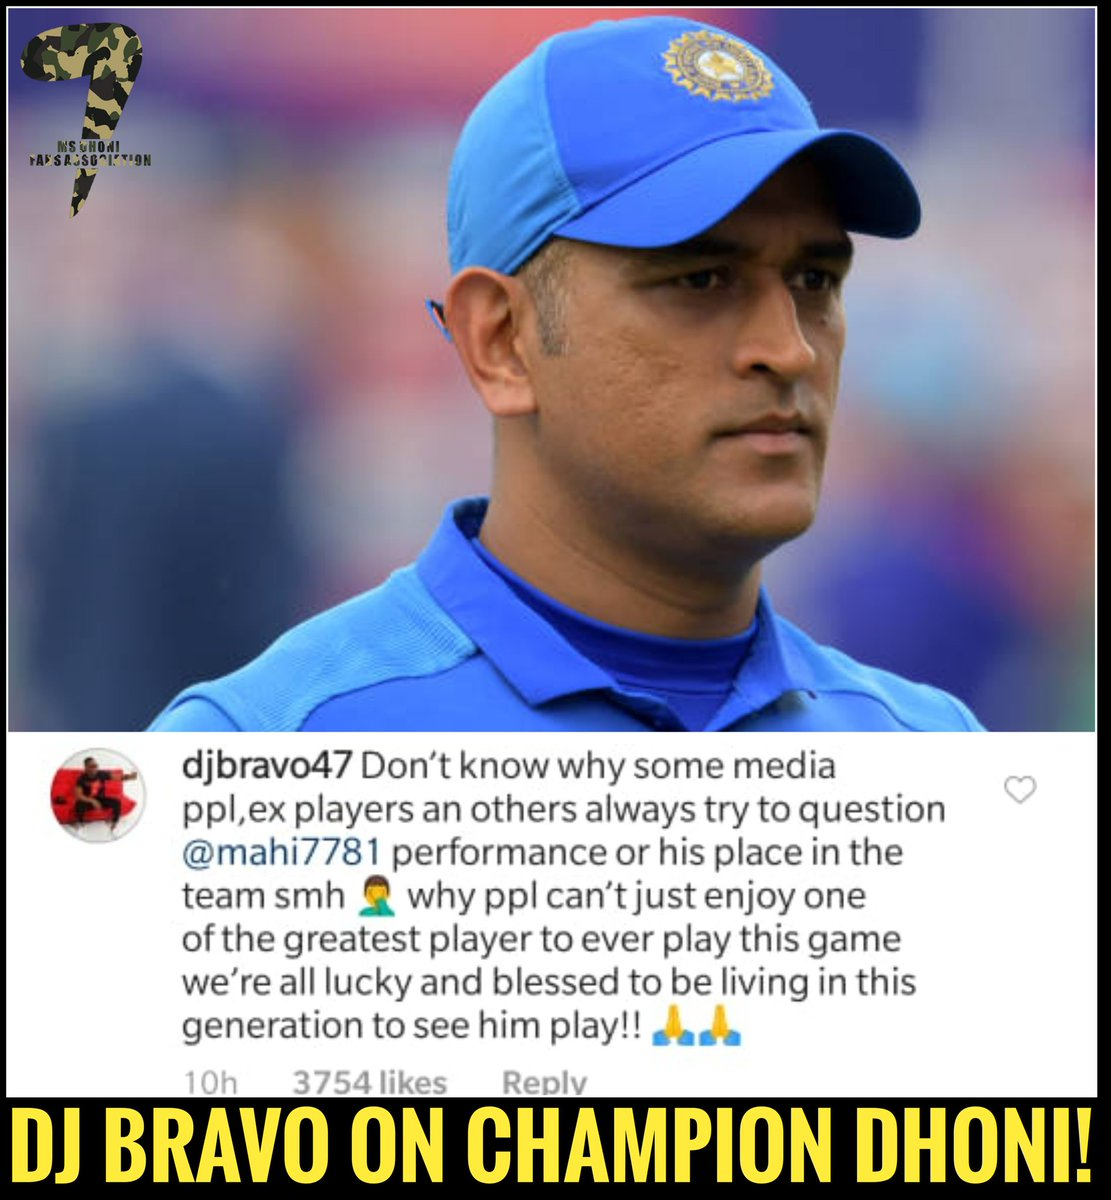 "We're all lucky & blessed to be living in this generation to see him play.""  - DJ Bravo  #DhoniAtCWC19  #Dhoni<br>http://pic.twitter.com/w4Rt6PDTxR"